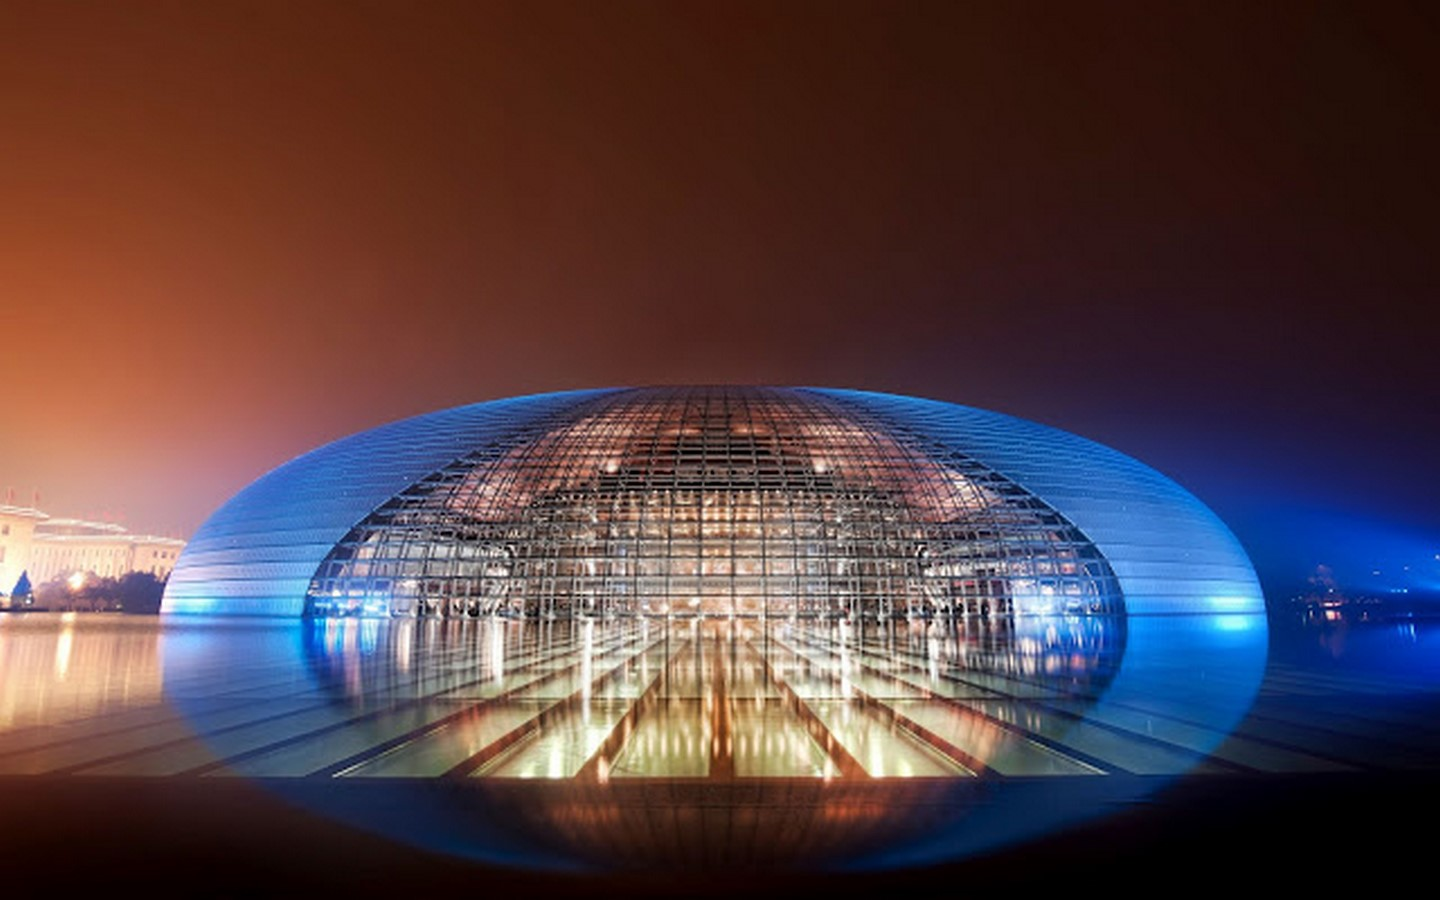 National Centre For The Performing Arts by Paul Andreu: Situated in the heart of Beijing - Sheet8